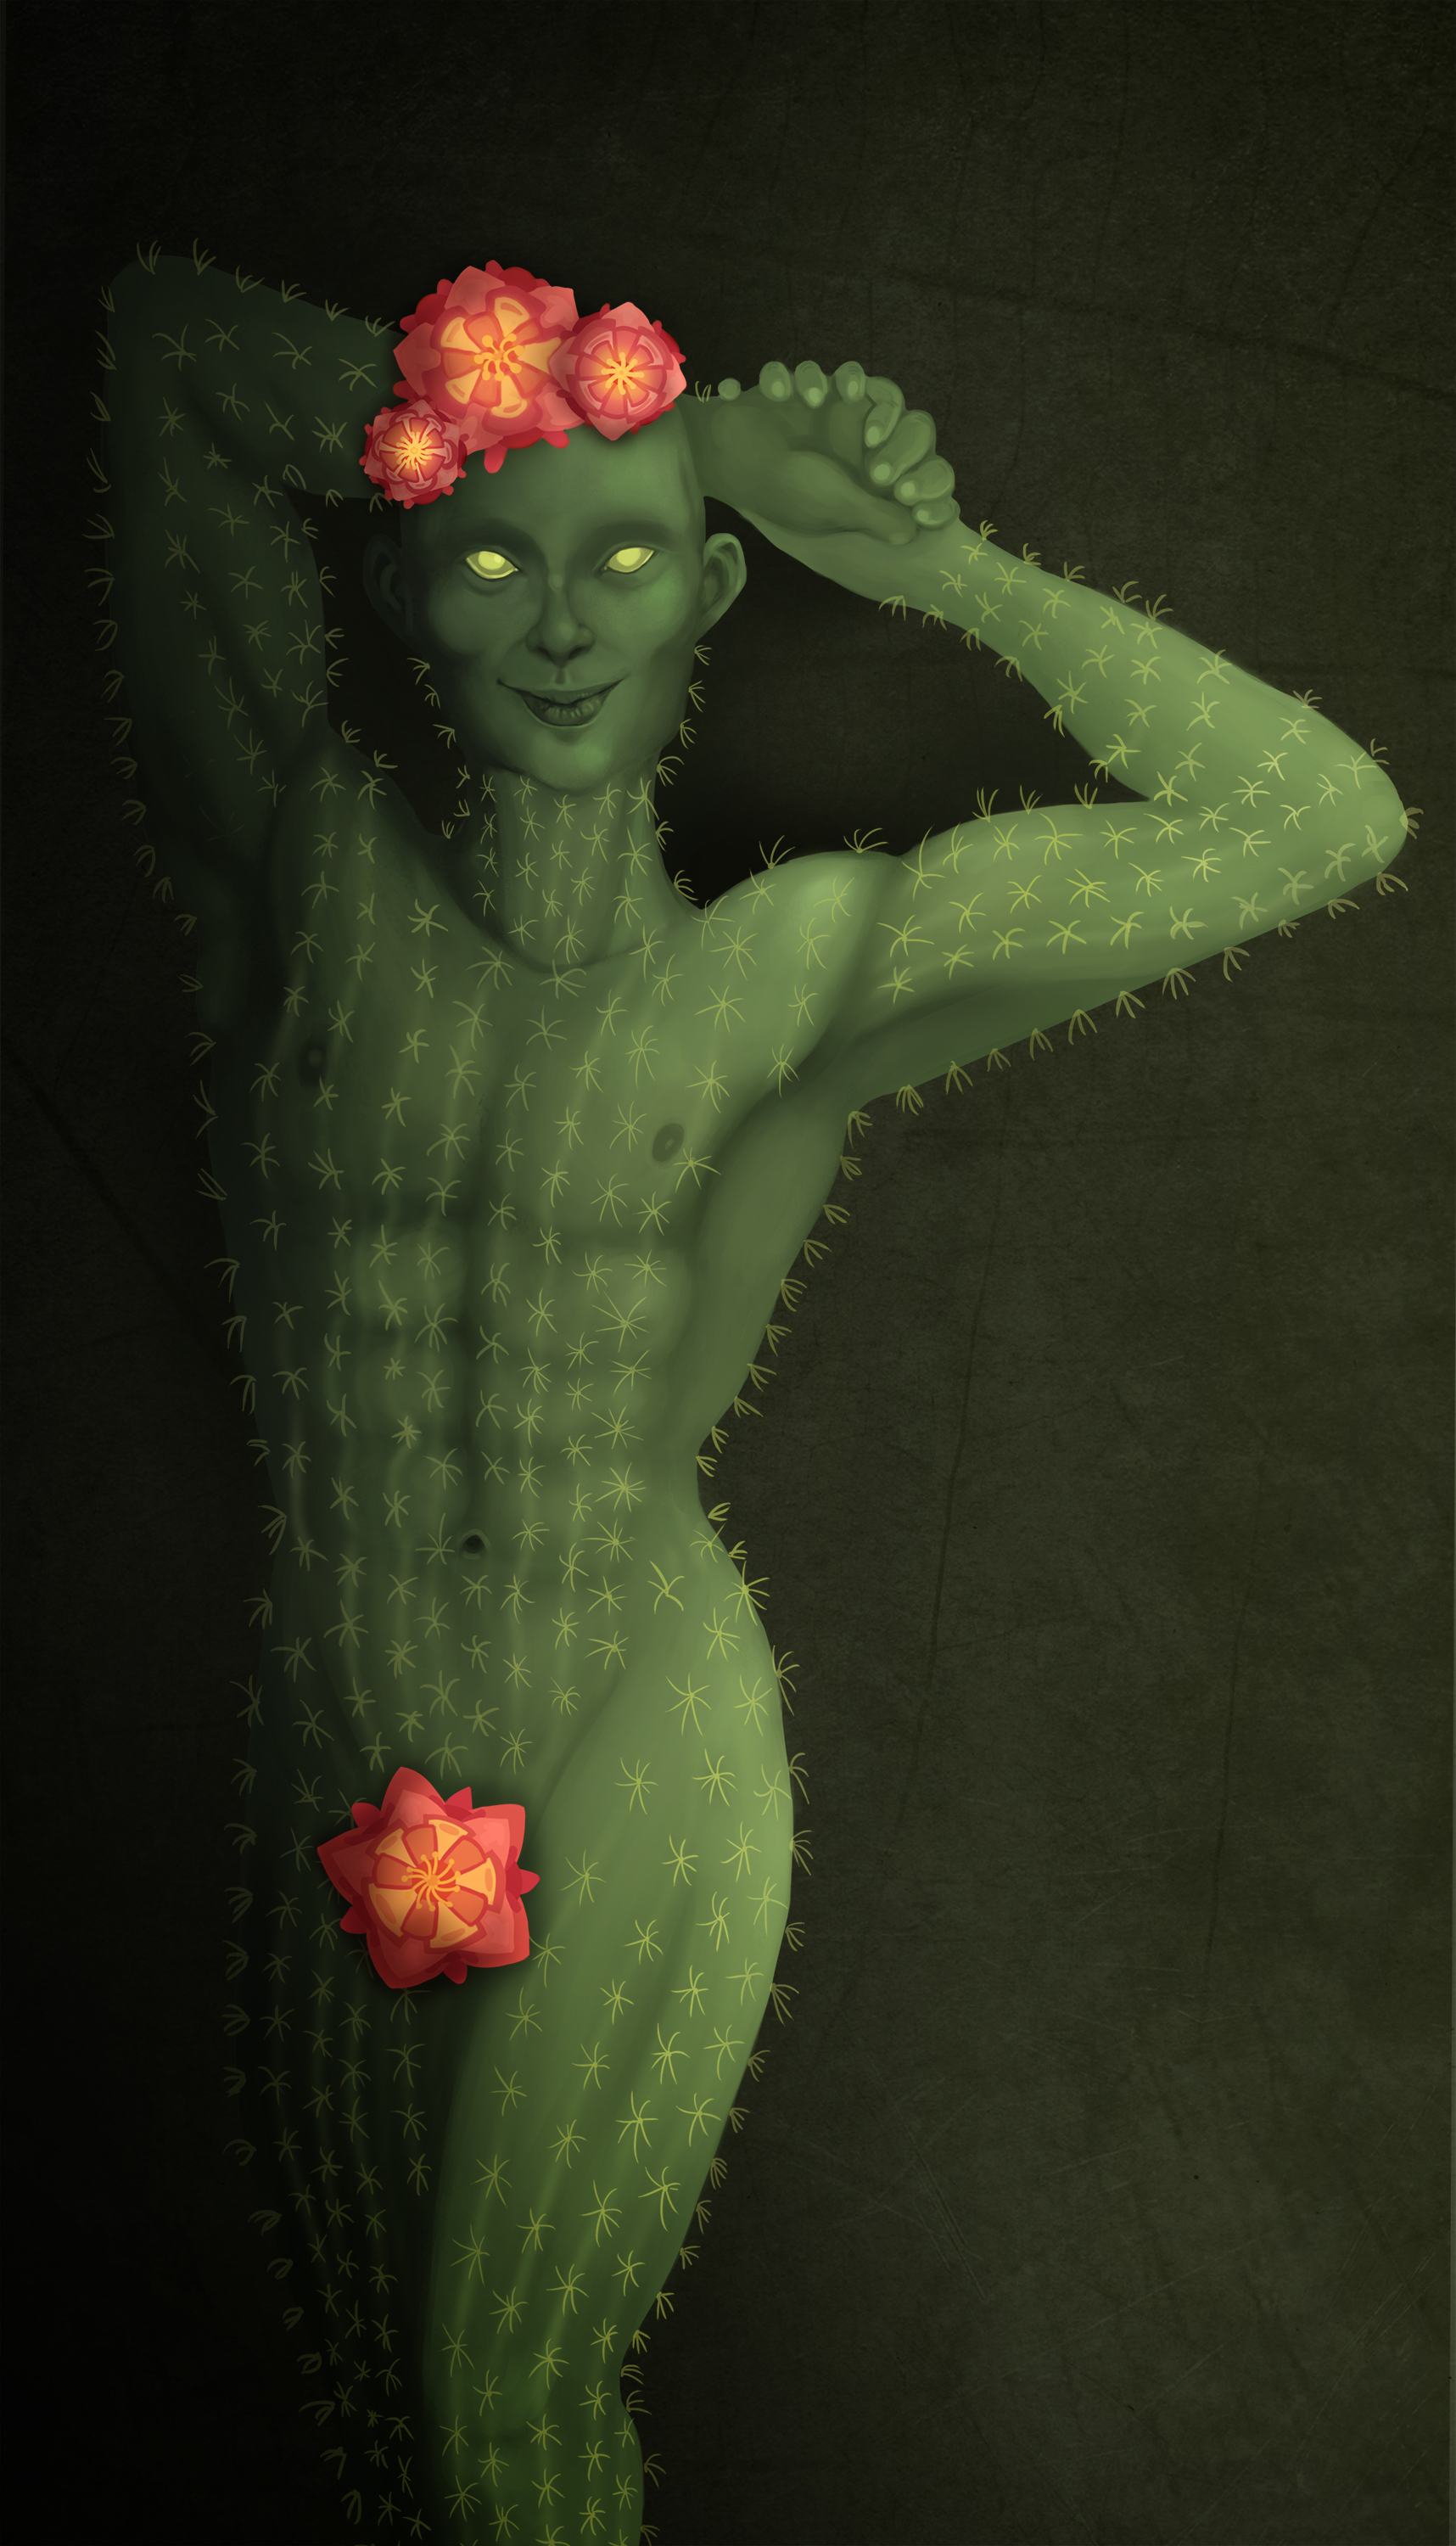 The sleazy cactusman